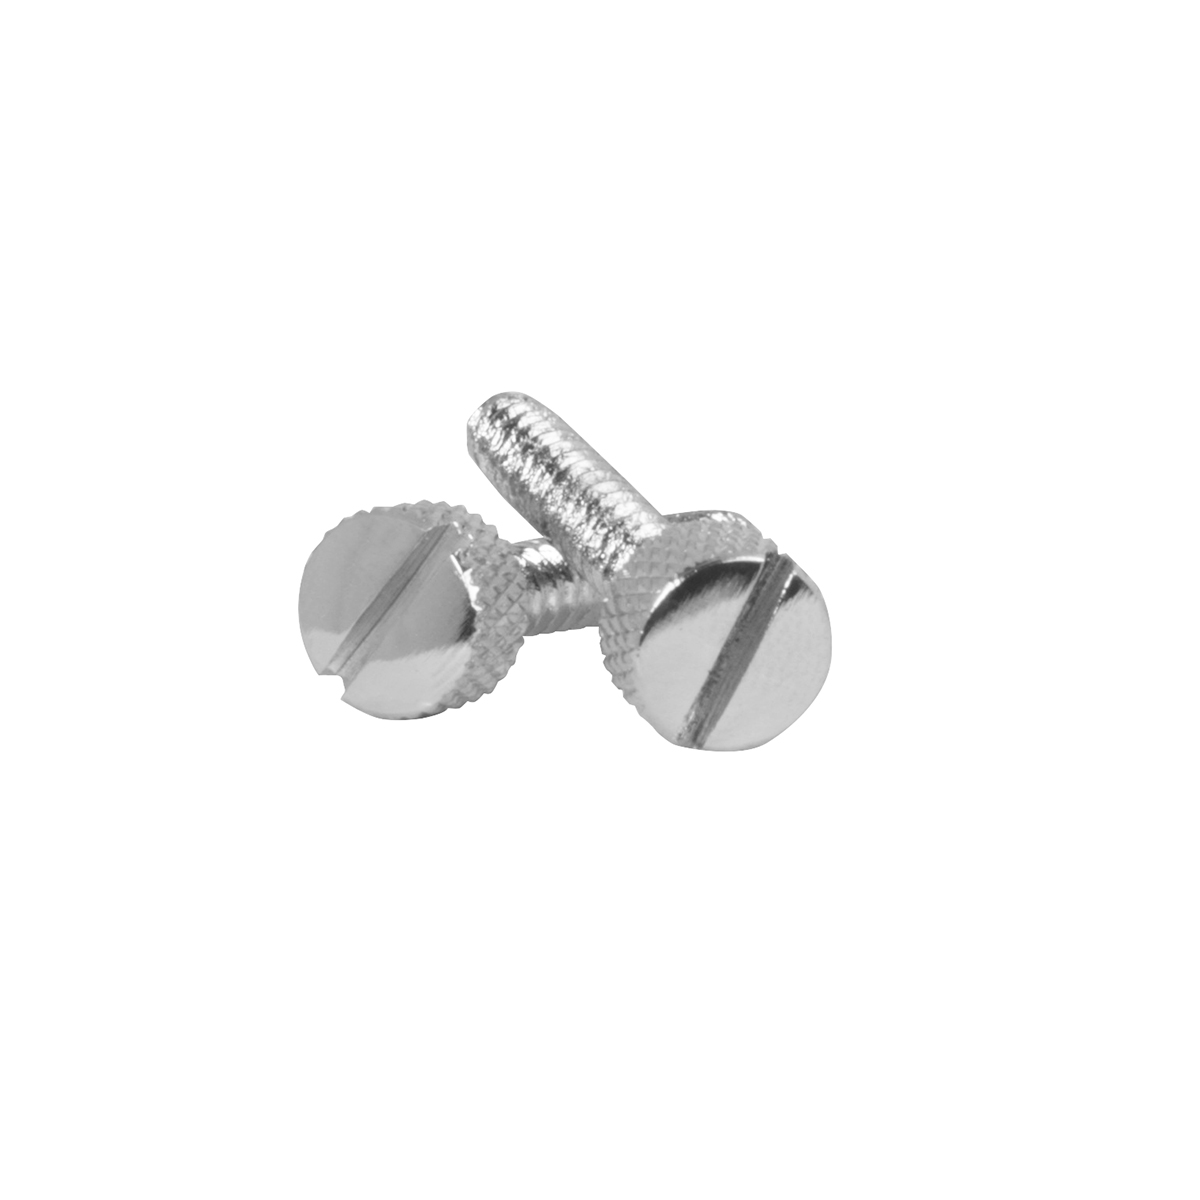 67168 FLT Chrome Steel Small Dash Screws